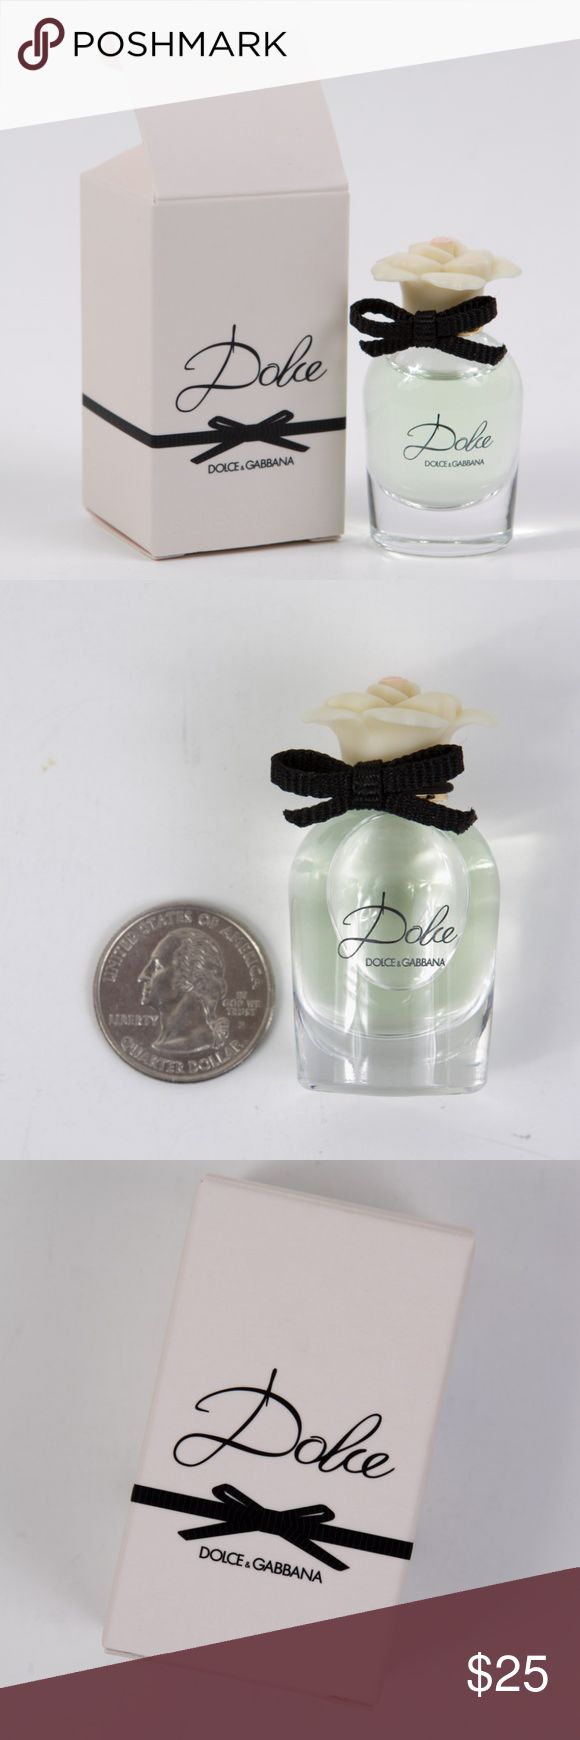 Dolce & Gabbana Dolce Eau De Parfum Deluxe Mini New. Unused. Authentic. No trades.  Perfect for travel or to try out before committing to full size. Please note item → size ← before purchasing.   You will receive the following miniature:  Dolce & Gabbana Dolce Eau De Parfum Miniature Splash in box  Size: 0.16 fl. oz./5 ml. Quantity: 1   Please note: NOT accepting offers for this item. Price is firm.  Tags: parfum perfume toilette fragrance scent Dolce & Gabbana Other